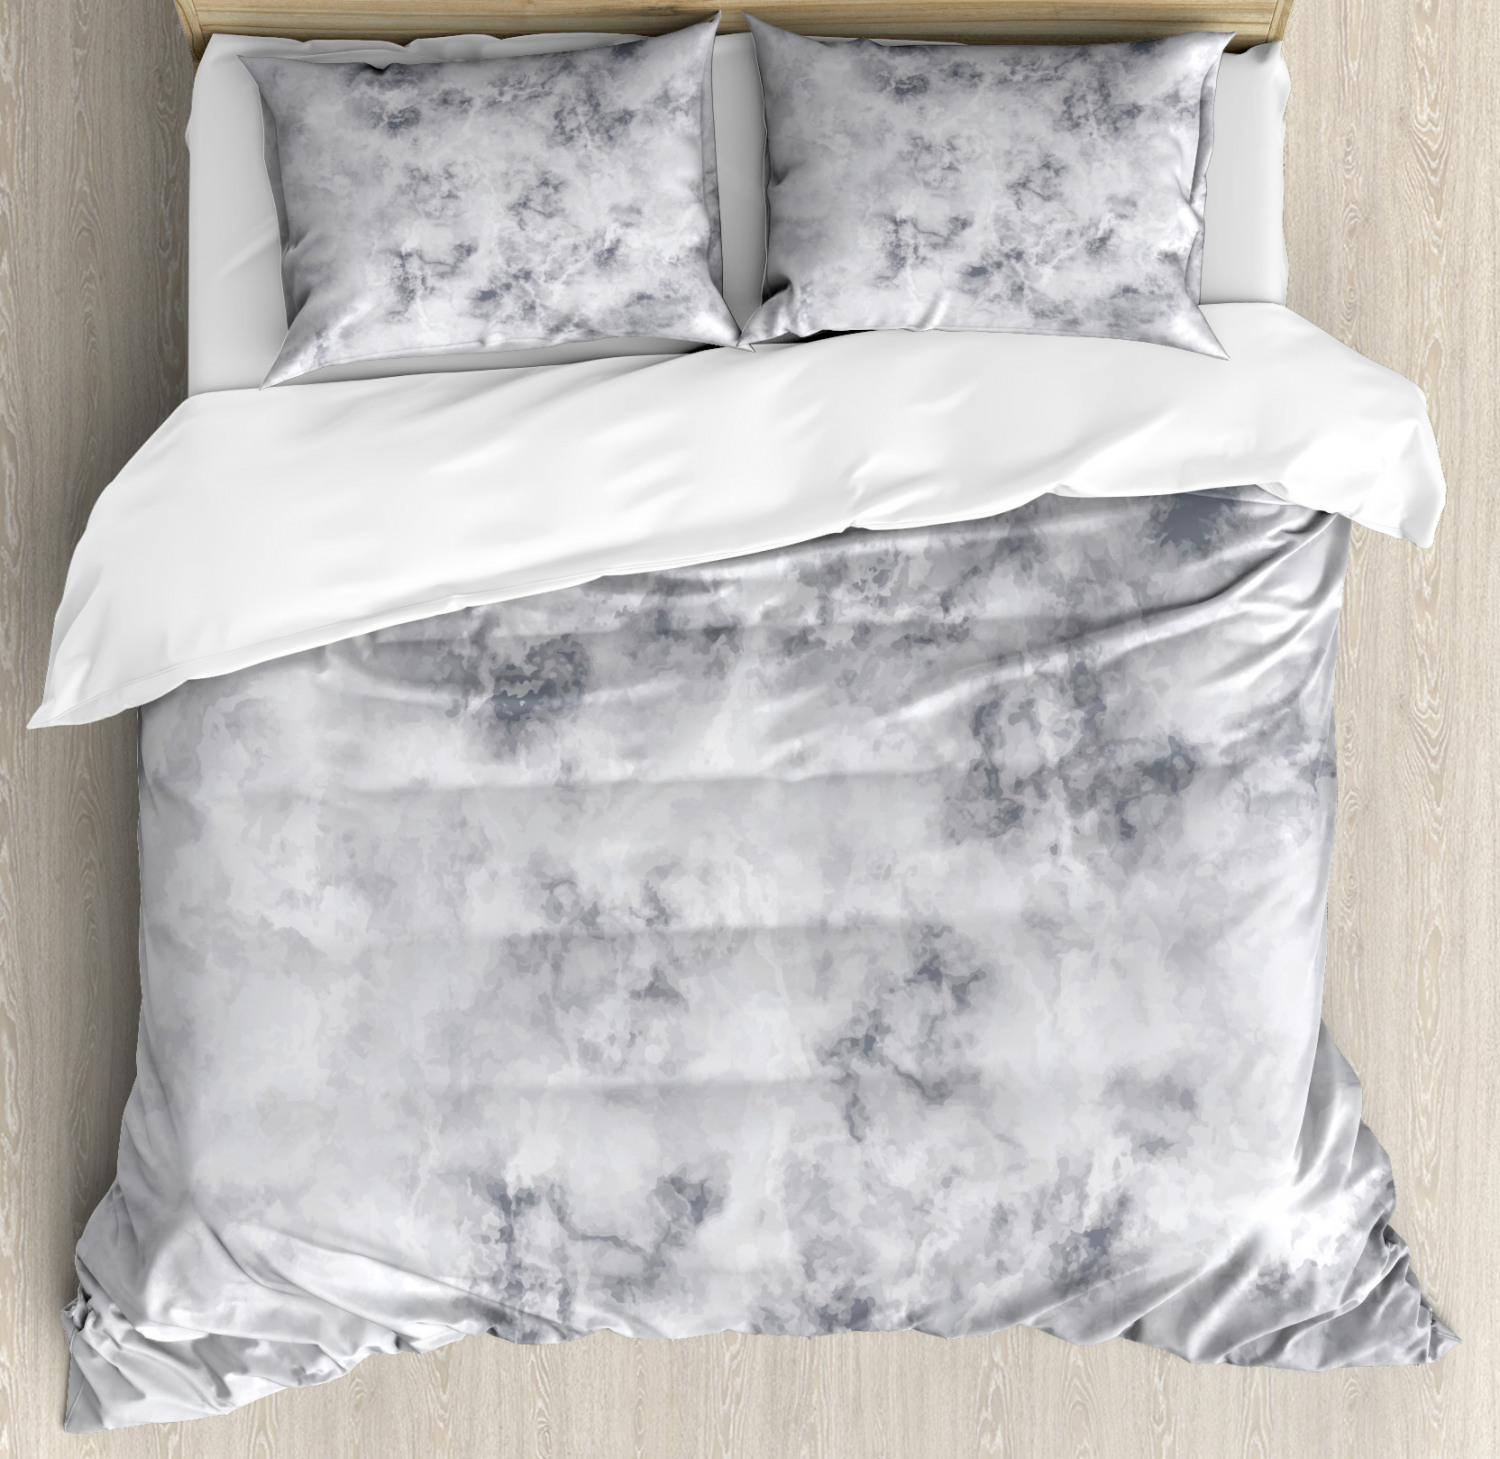 Marble Duvet Cover Set with Pillow Shams Granite Stormy Details Print